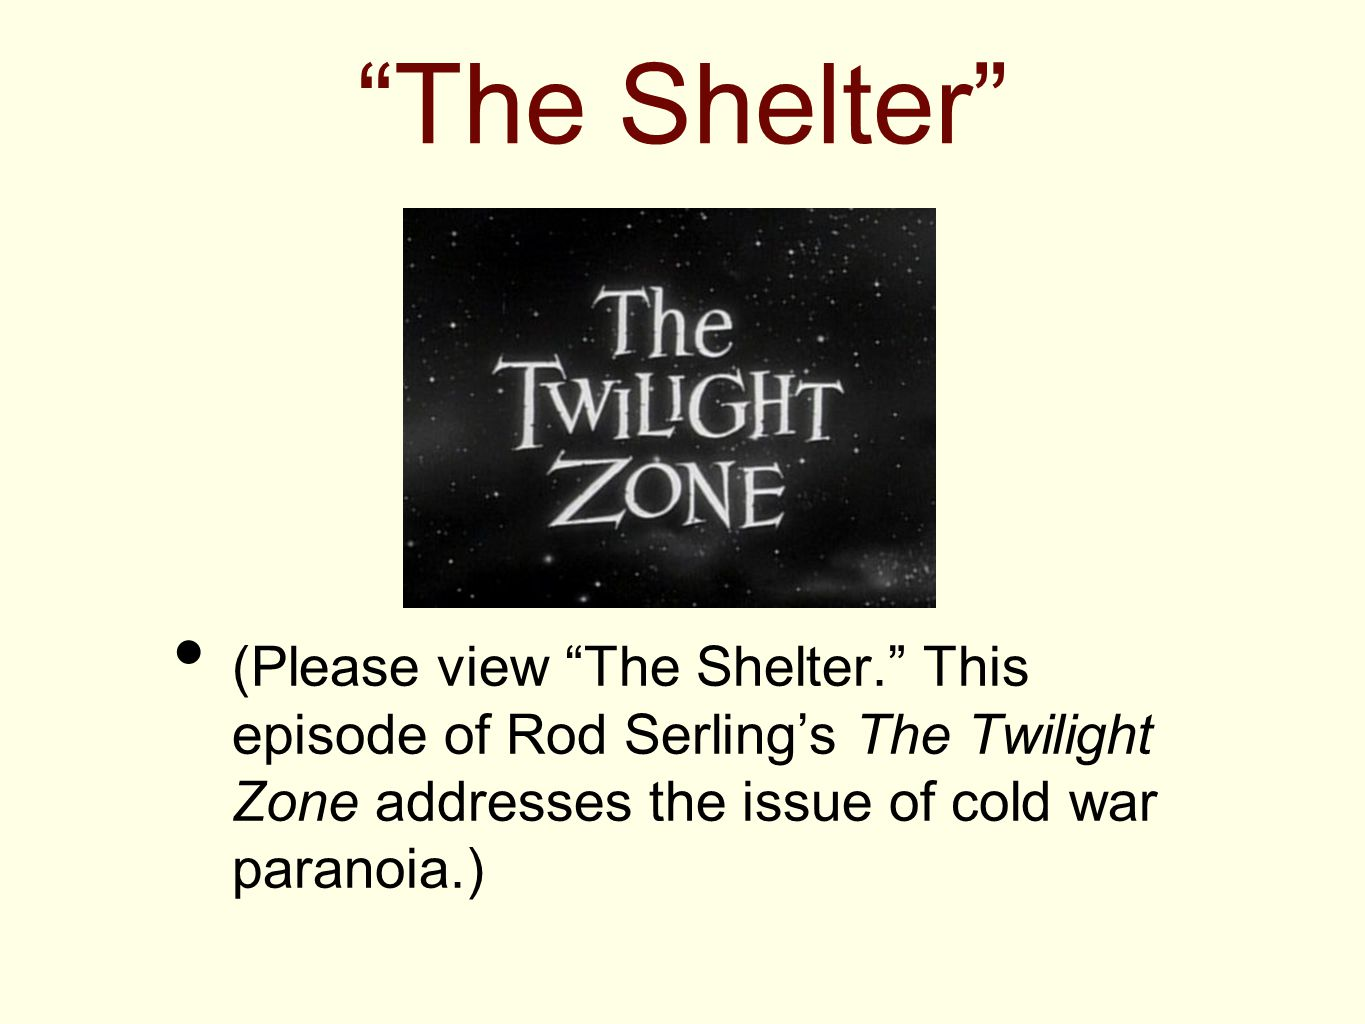 The Shelter (Please view The Shelter. This episode of Rod Serling's The Twilight Zone addresses the issue of cold war paranoia.)